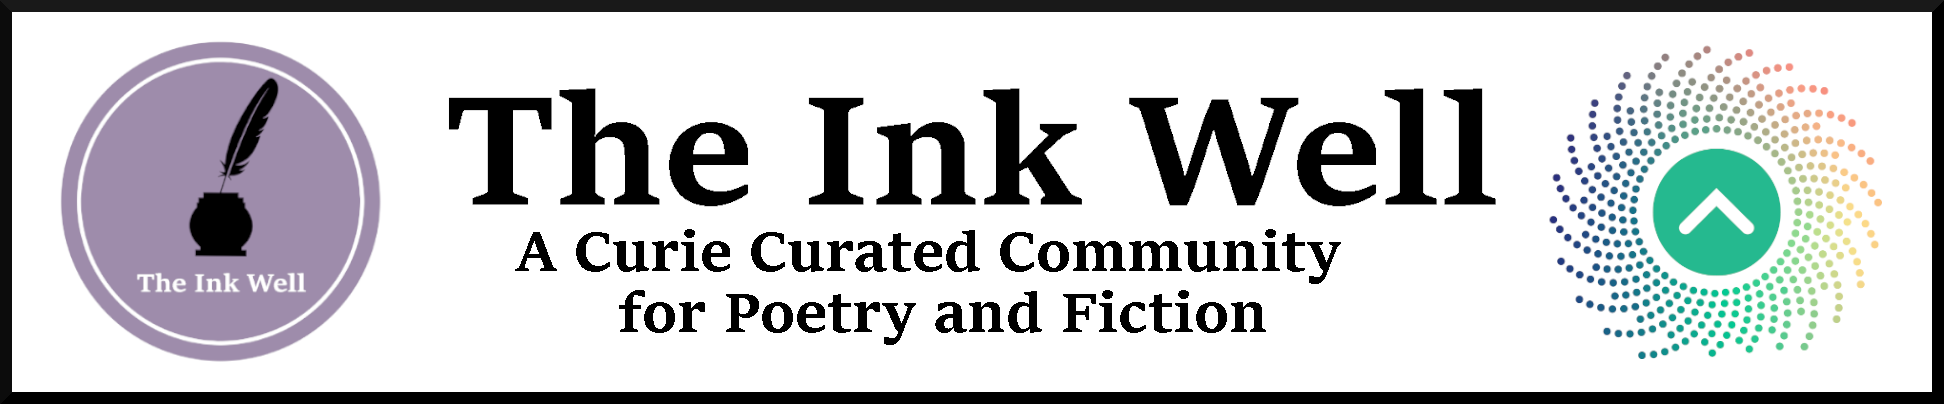 The IThe Ink well Banner 1.png